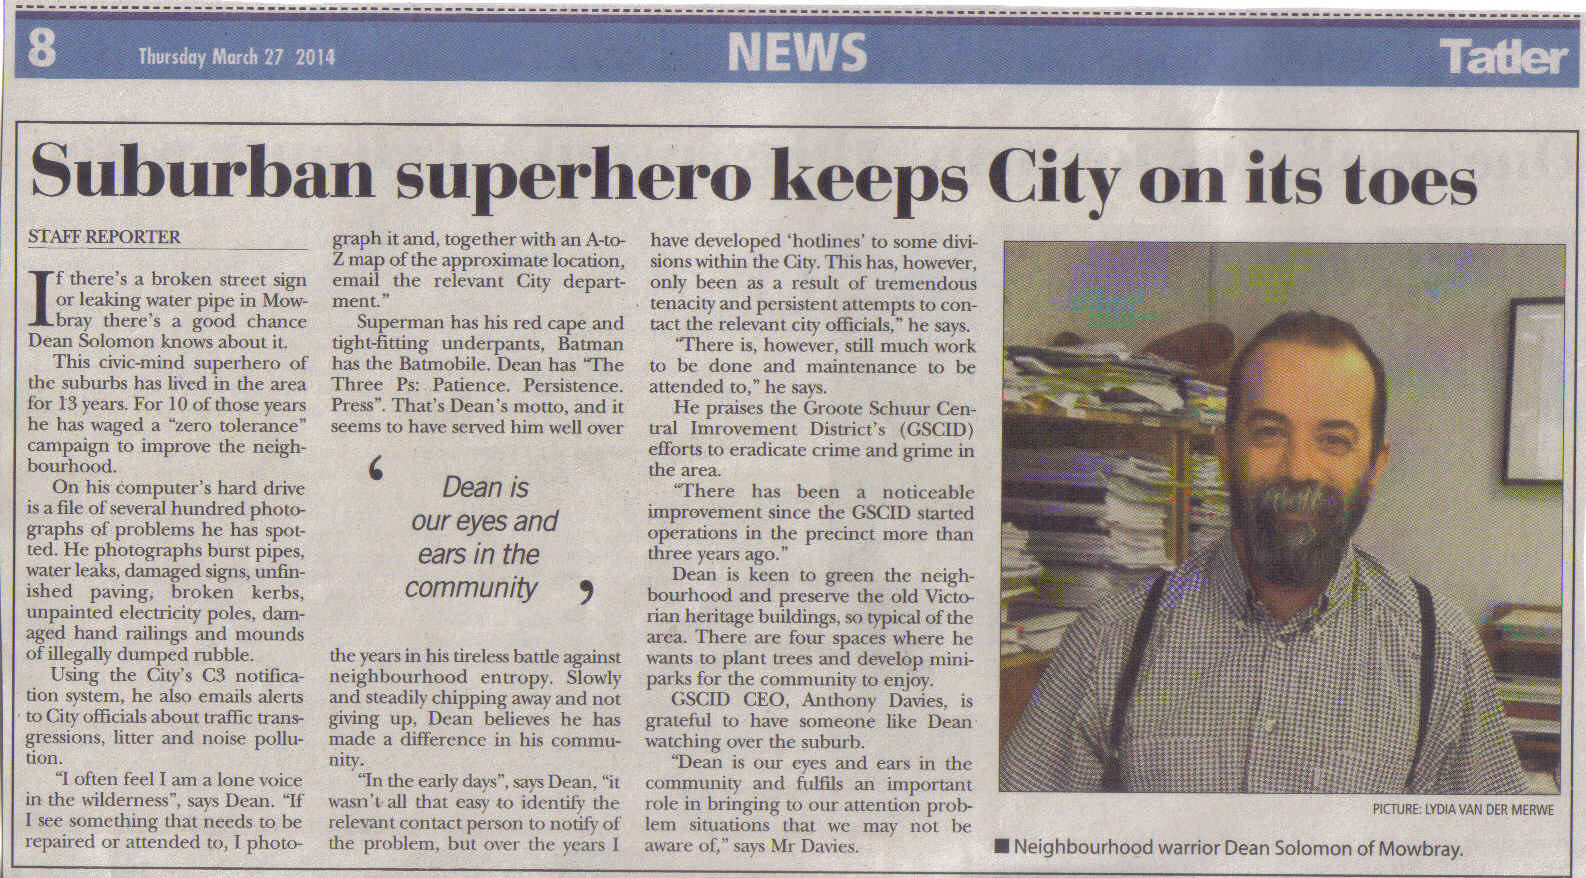 Suburban superhero keeps City on its toes (Thursday, 27 March 2014)